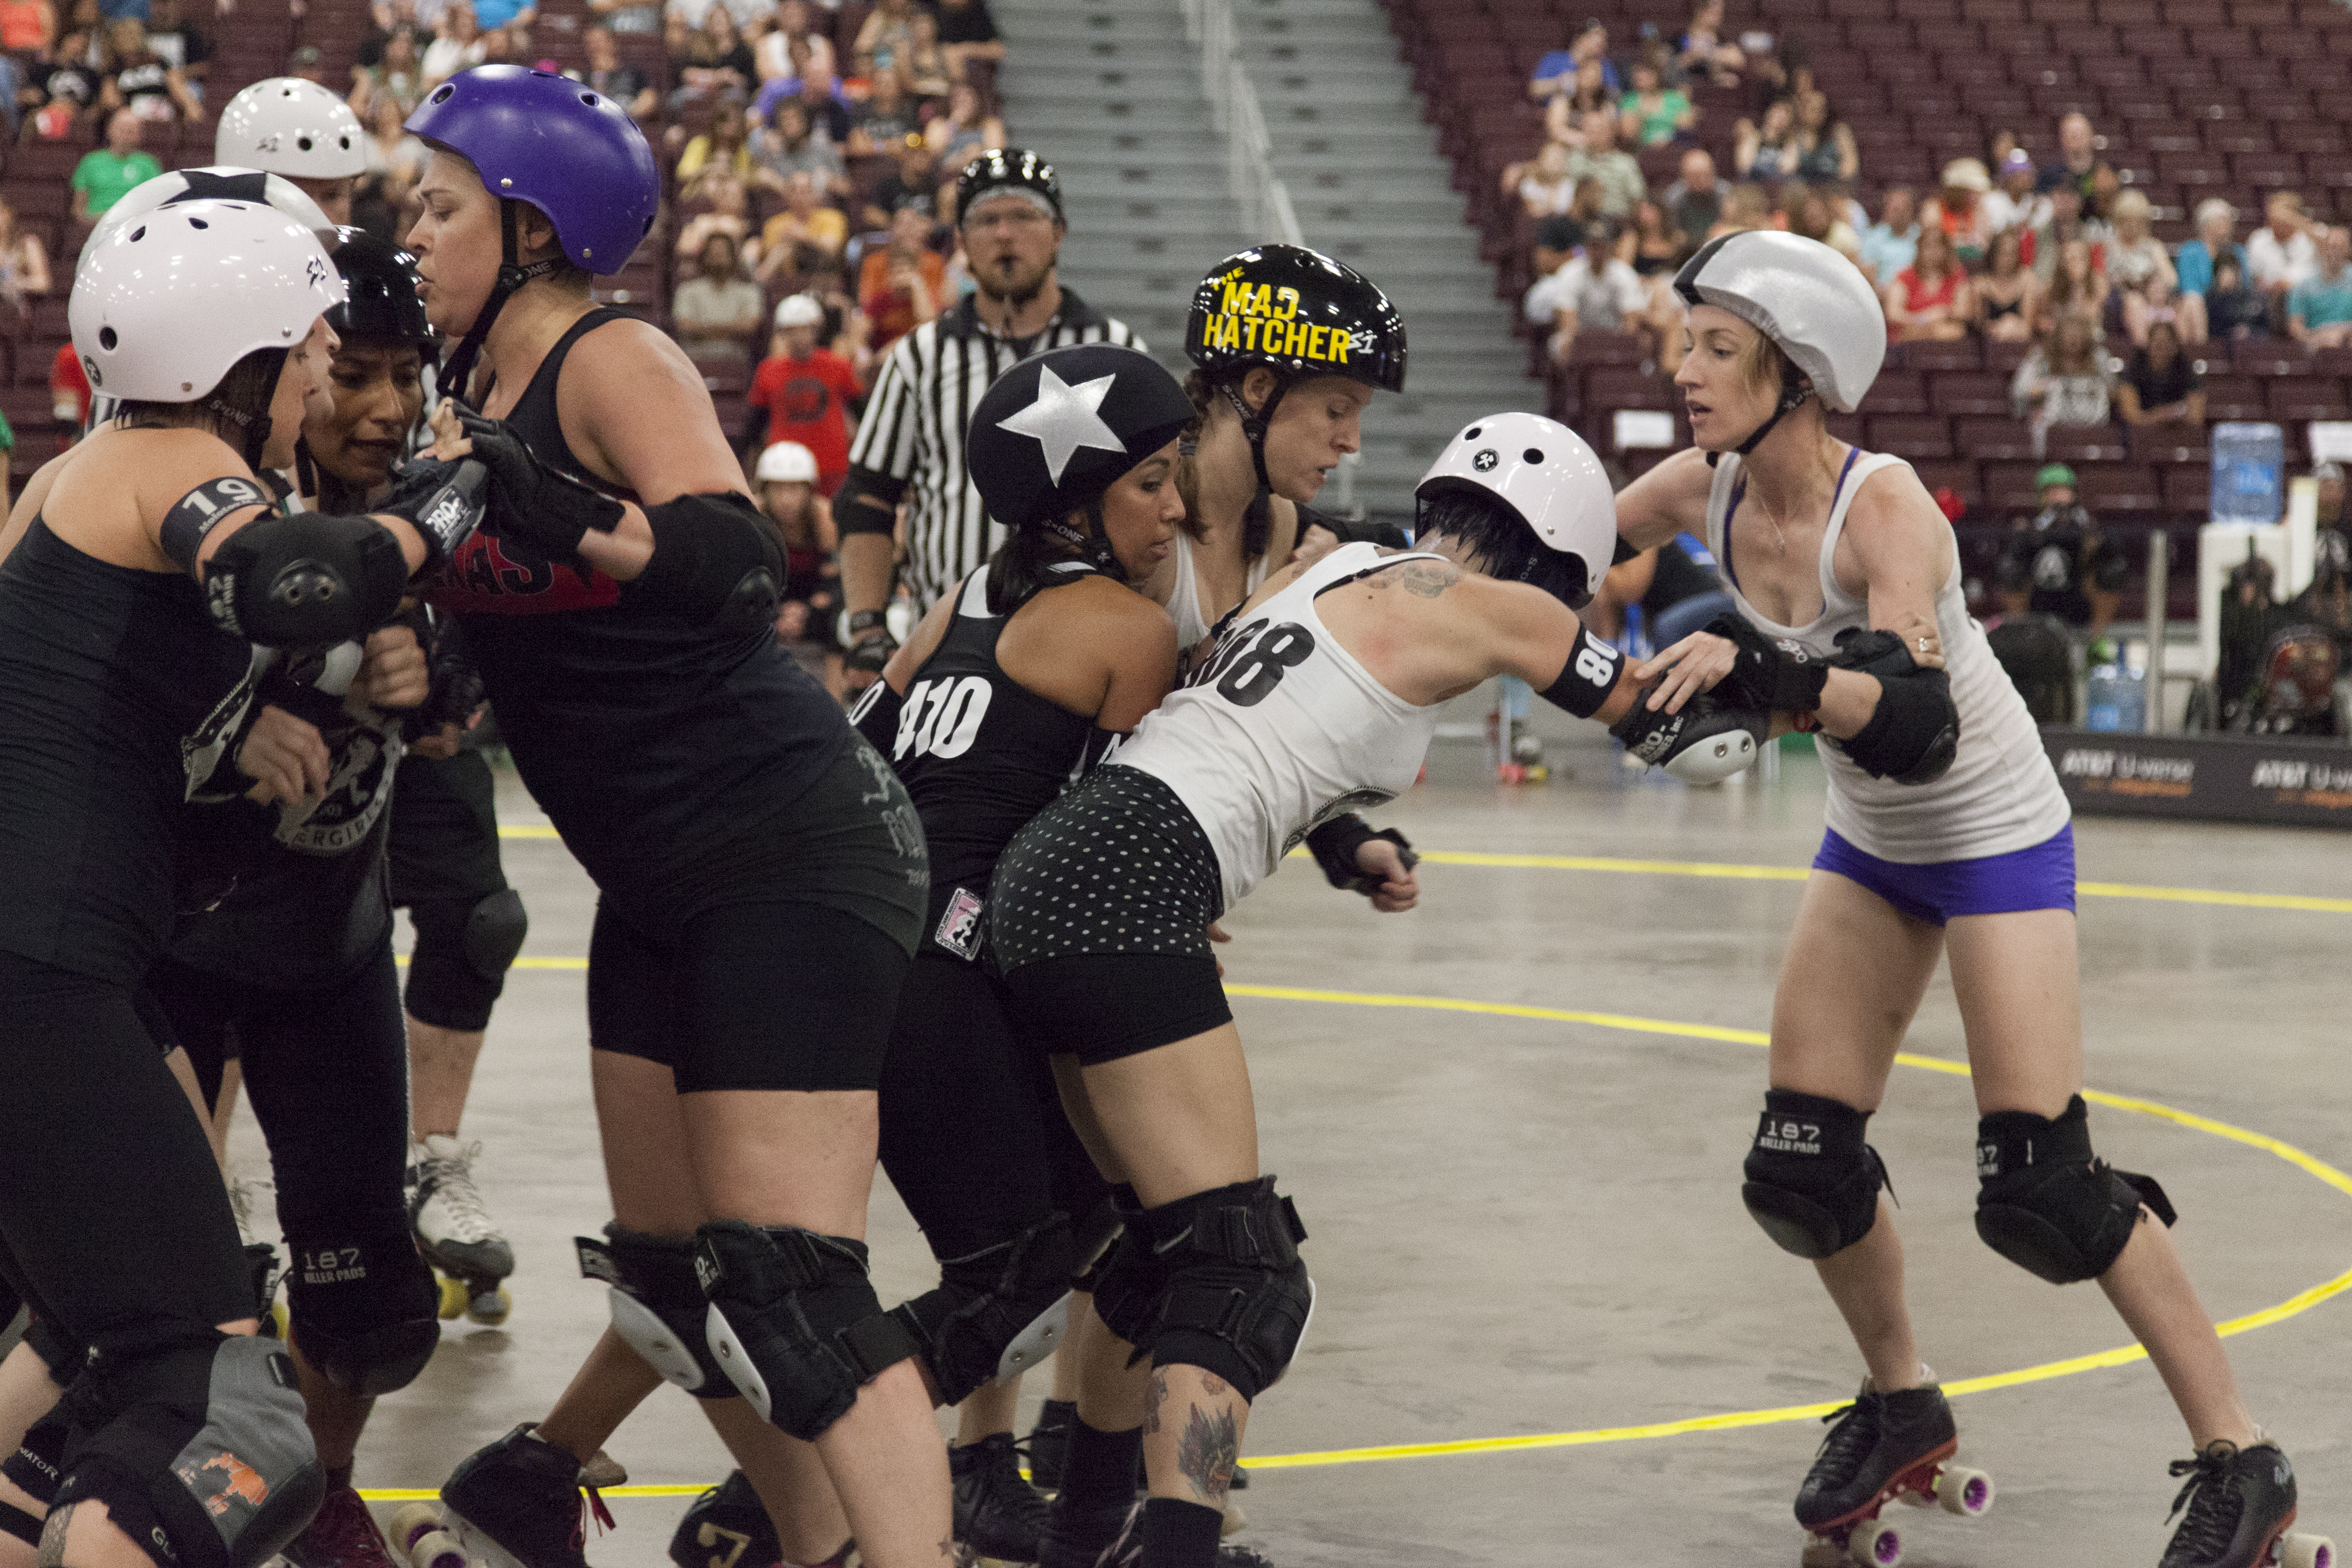 The Bar Belles and Clean N Jerks fight it out during the bout at the Naturally Fit Games.